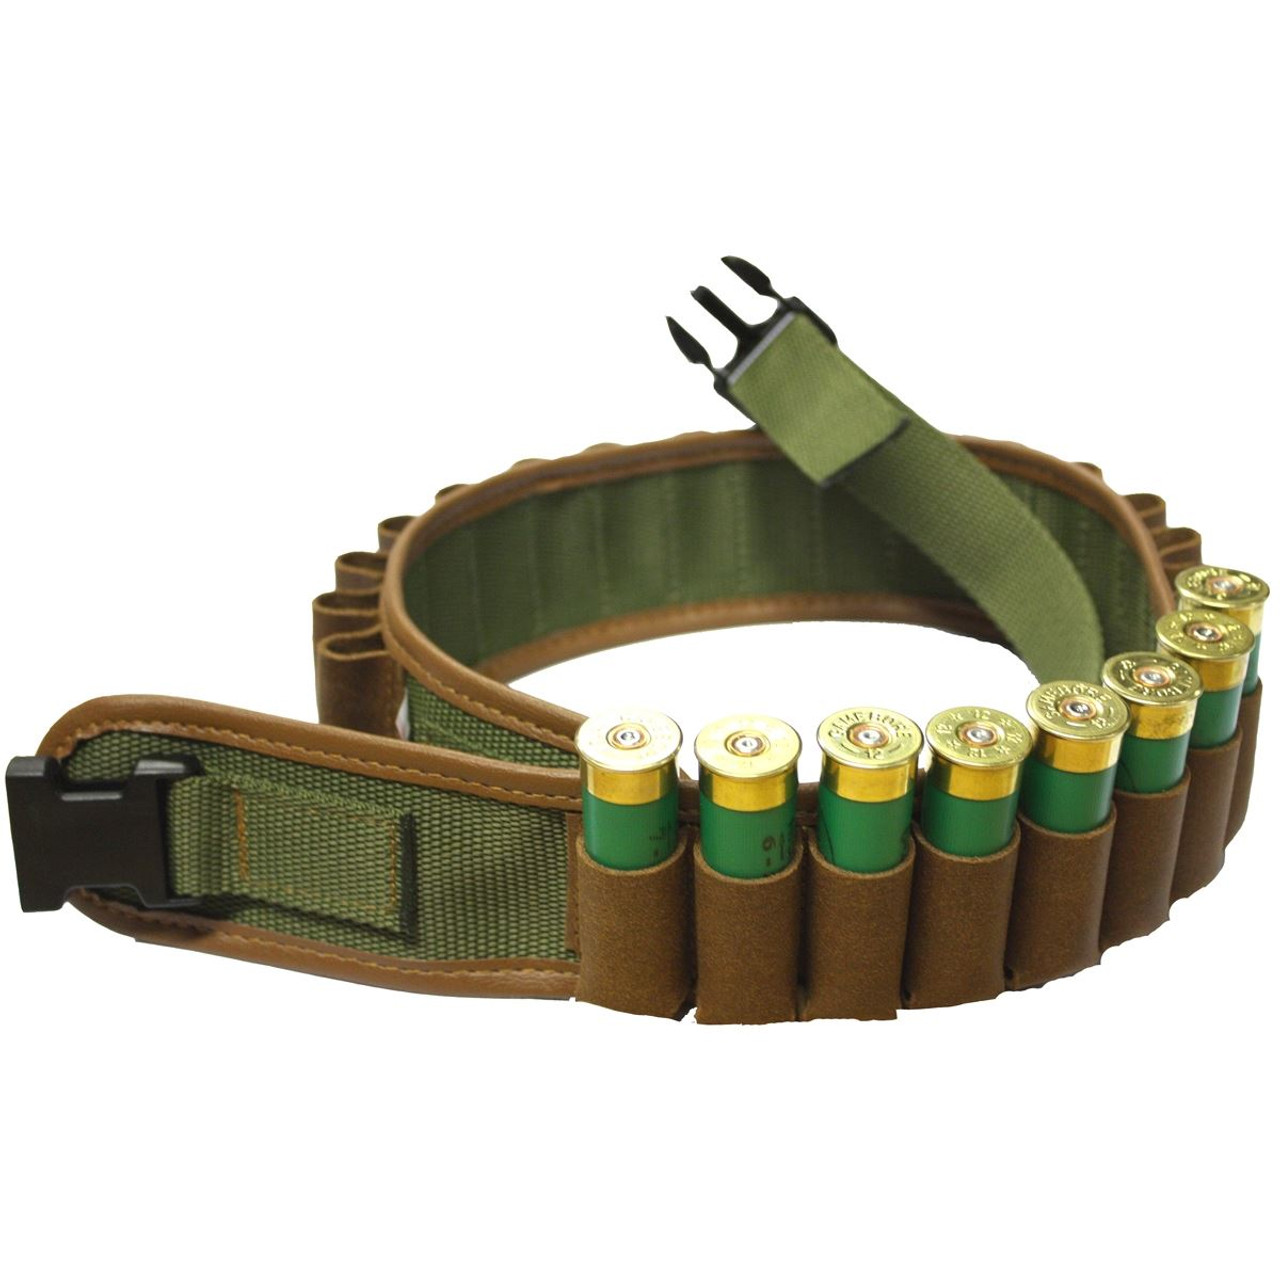 Bisley Leather On Webbing Cartridge Belt